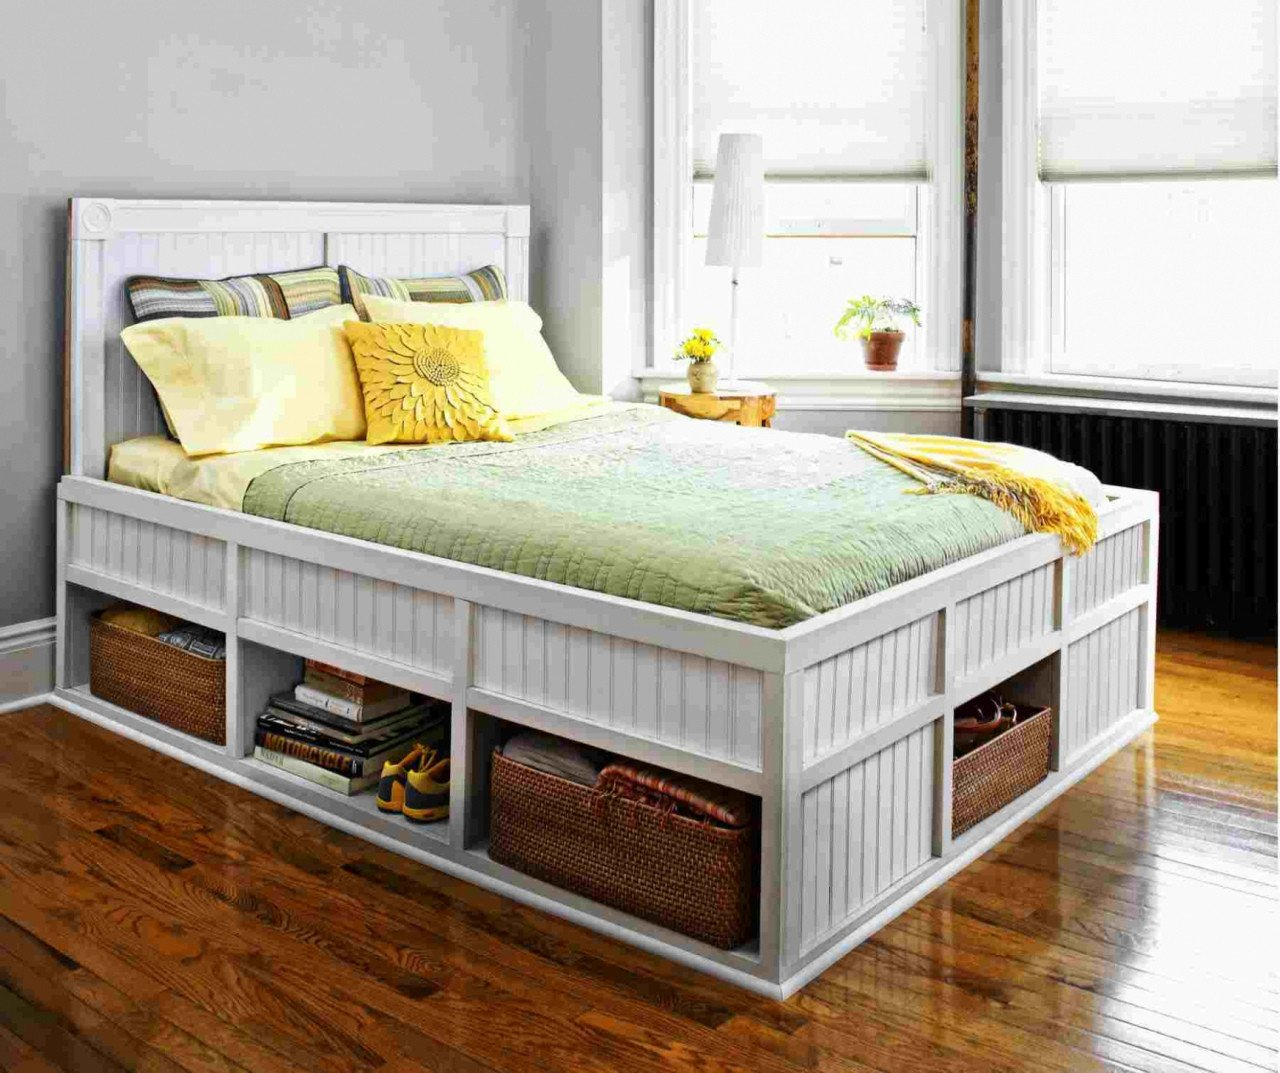 Distressed Wood Bedroom Furniture New Queen Bed Frame with Drawers — Procura Home Blog